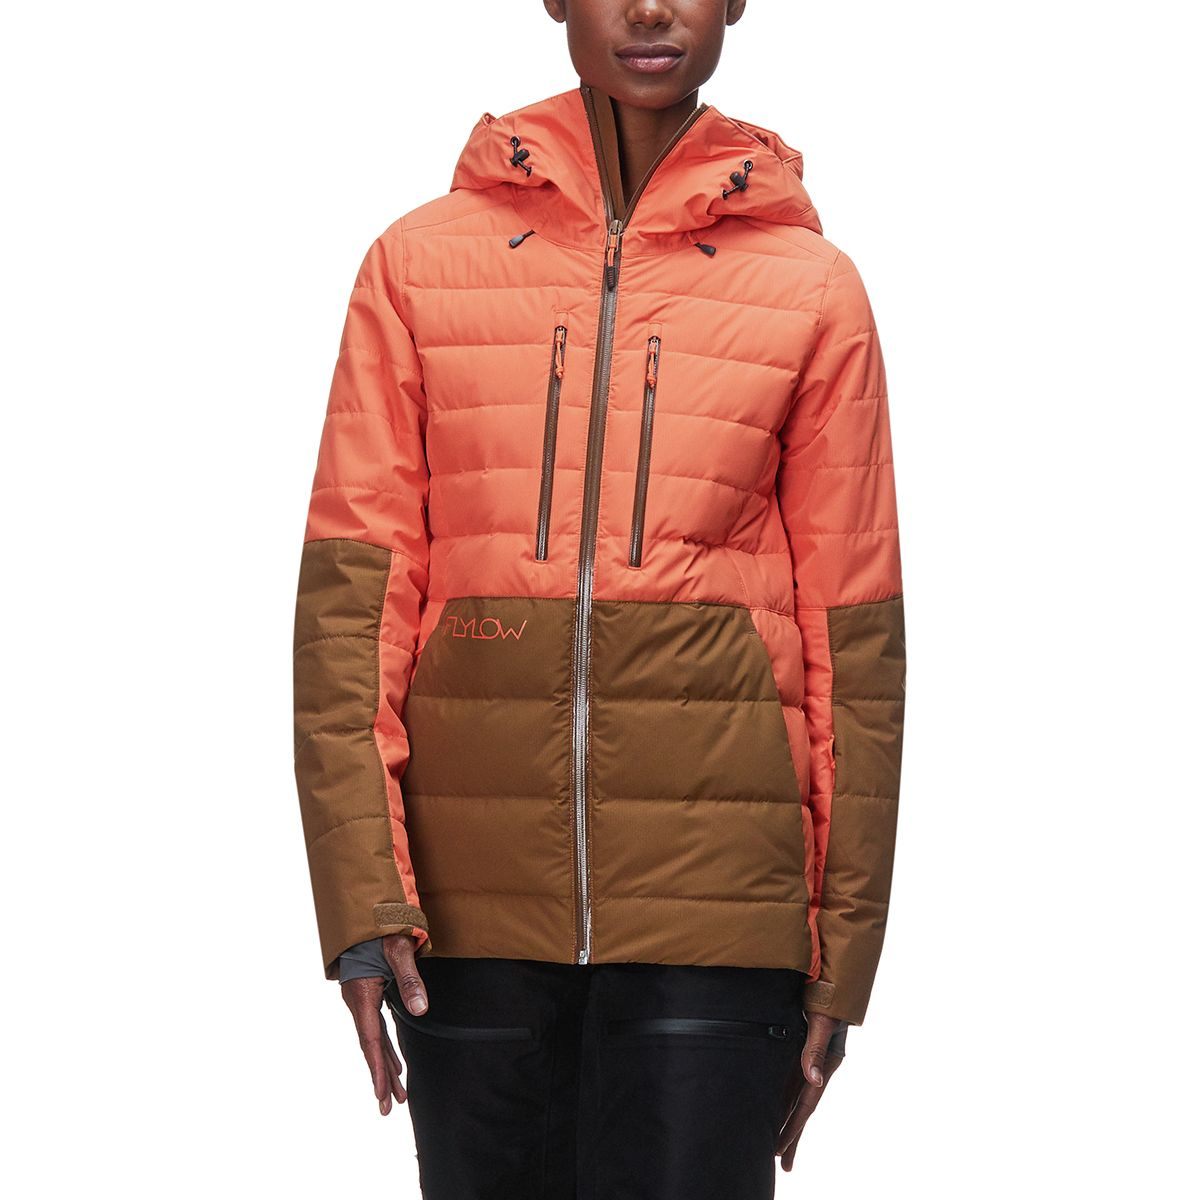 Flylow Gear Jody Down Jacket